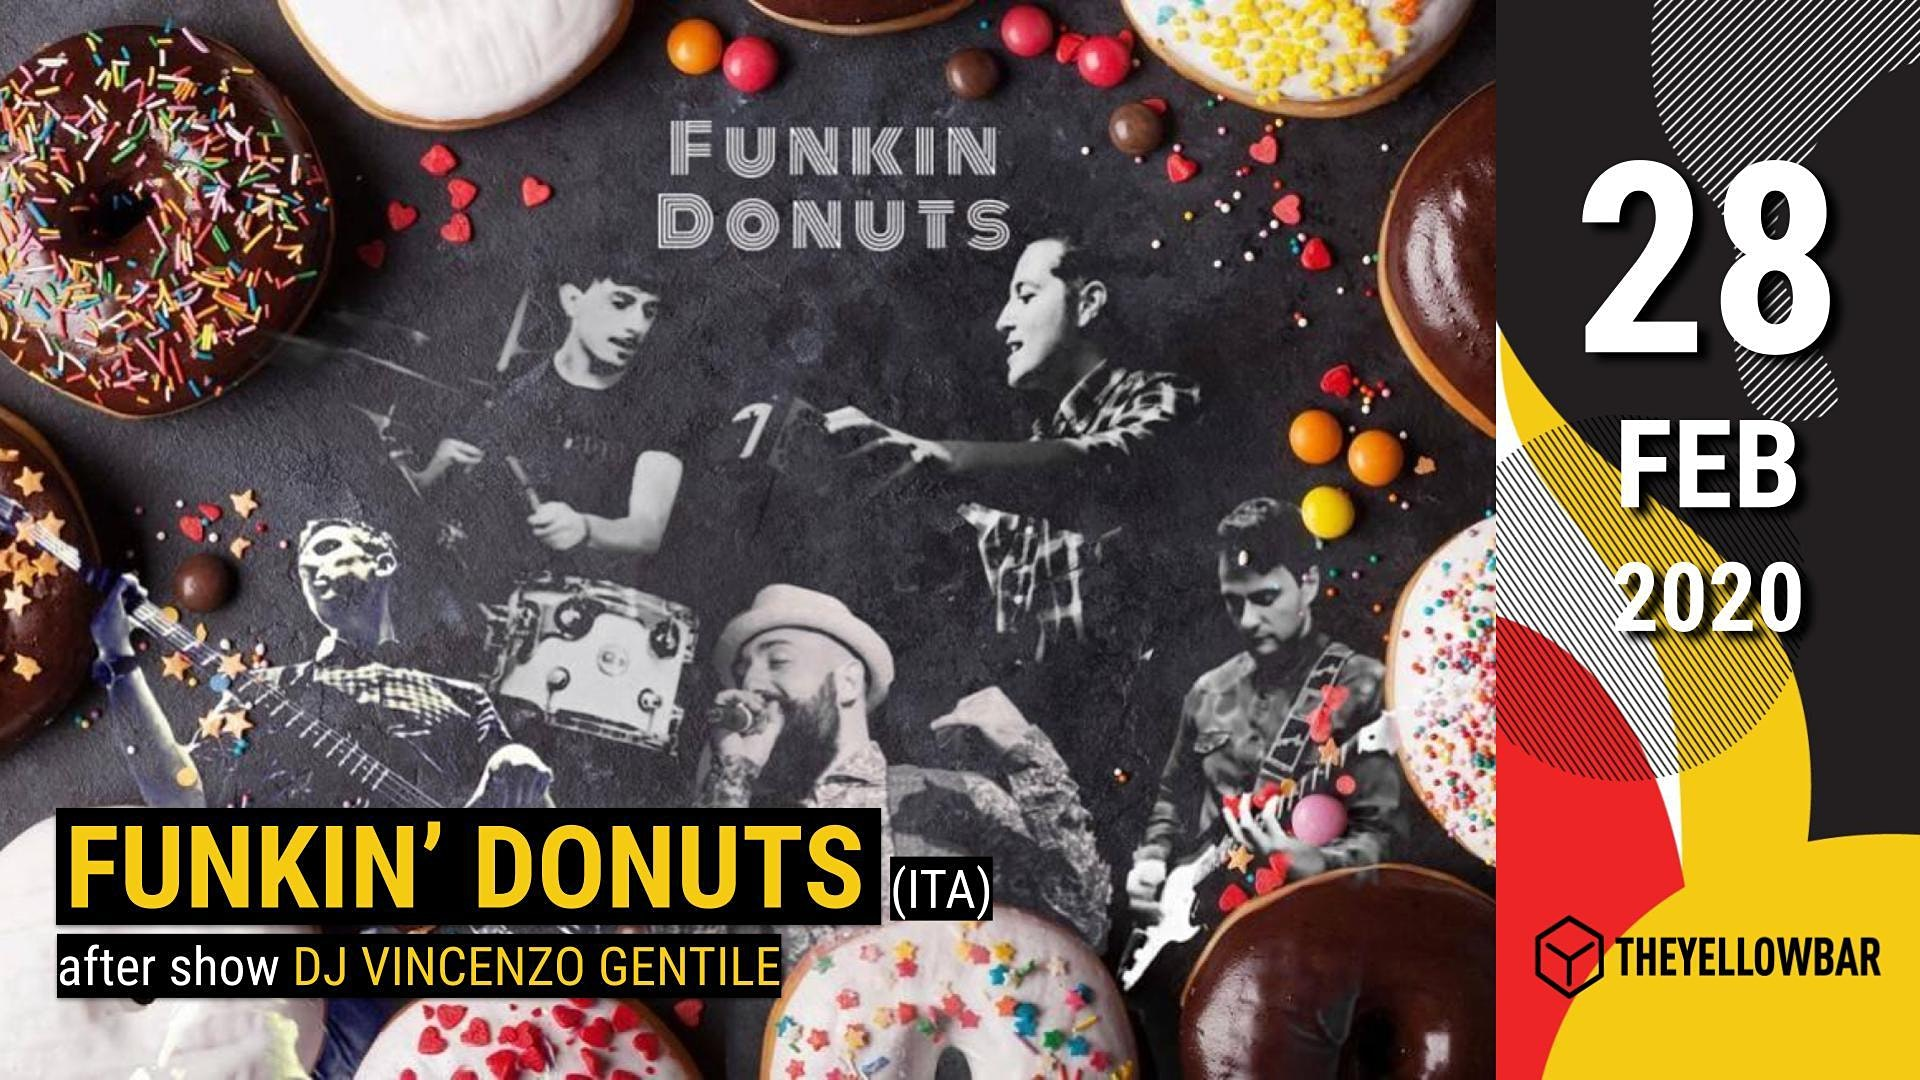 Funkin' Donuts - The Yellow Bar